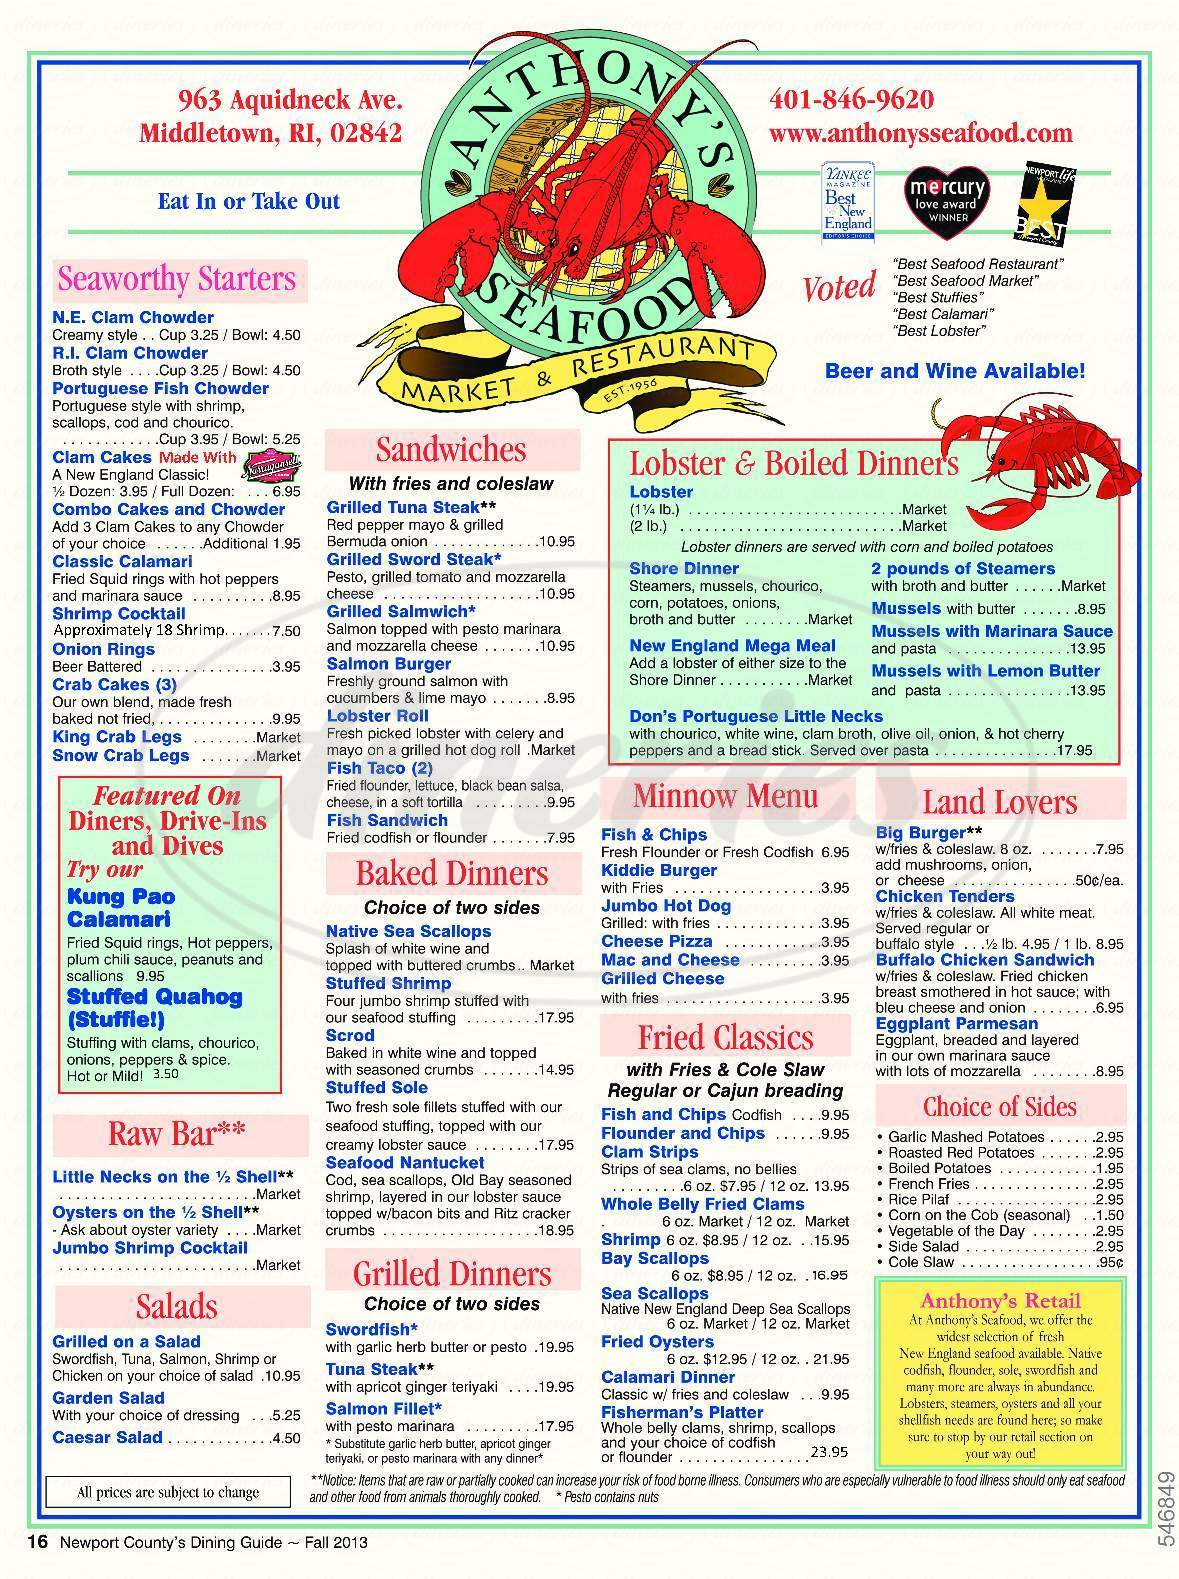 menu for Anthony's Seafood Restaurant